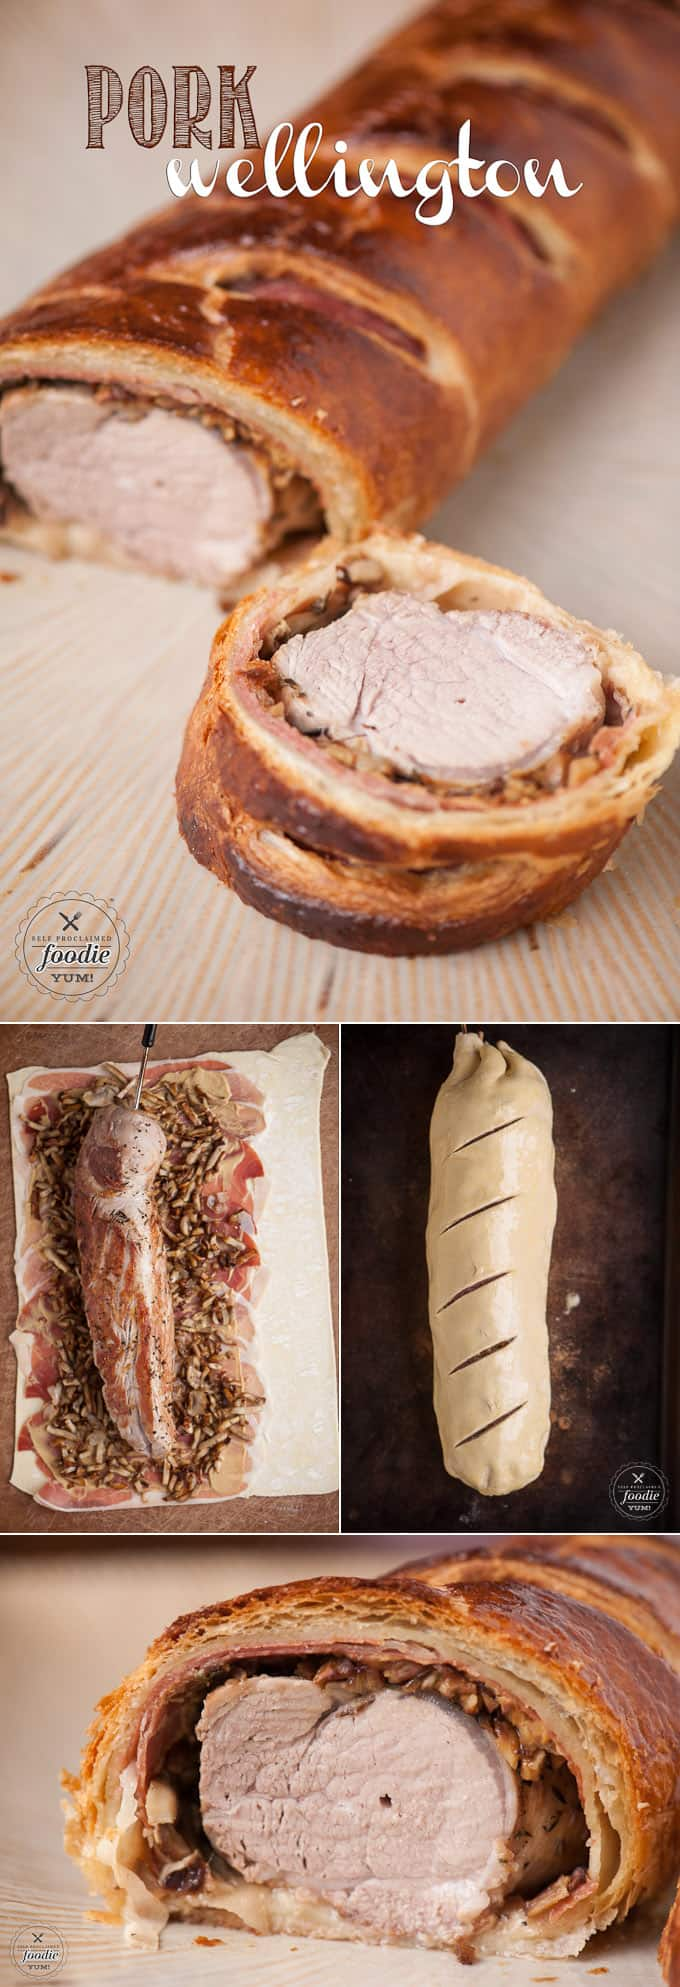 If you're looking for an easy dinner that is sure to impress everyone because of its amazing taste and presentation, choose Pork Wellington.